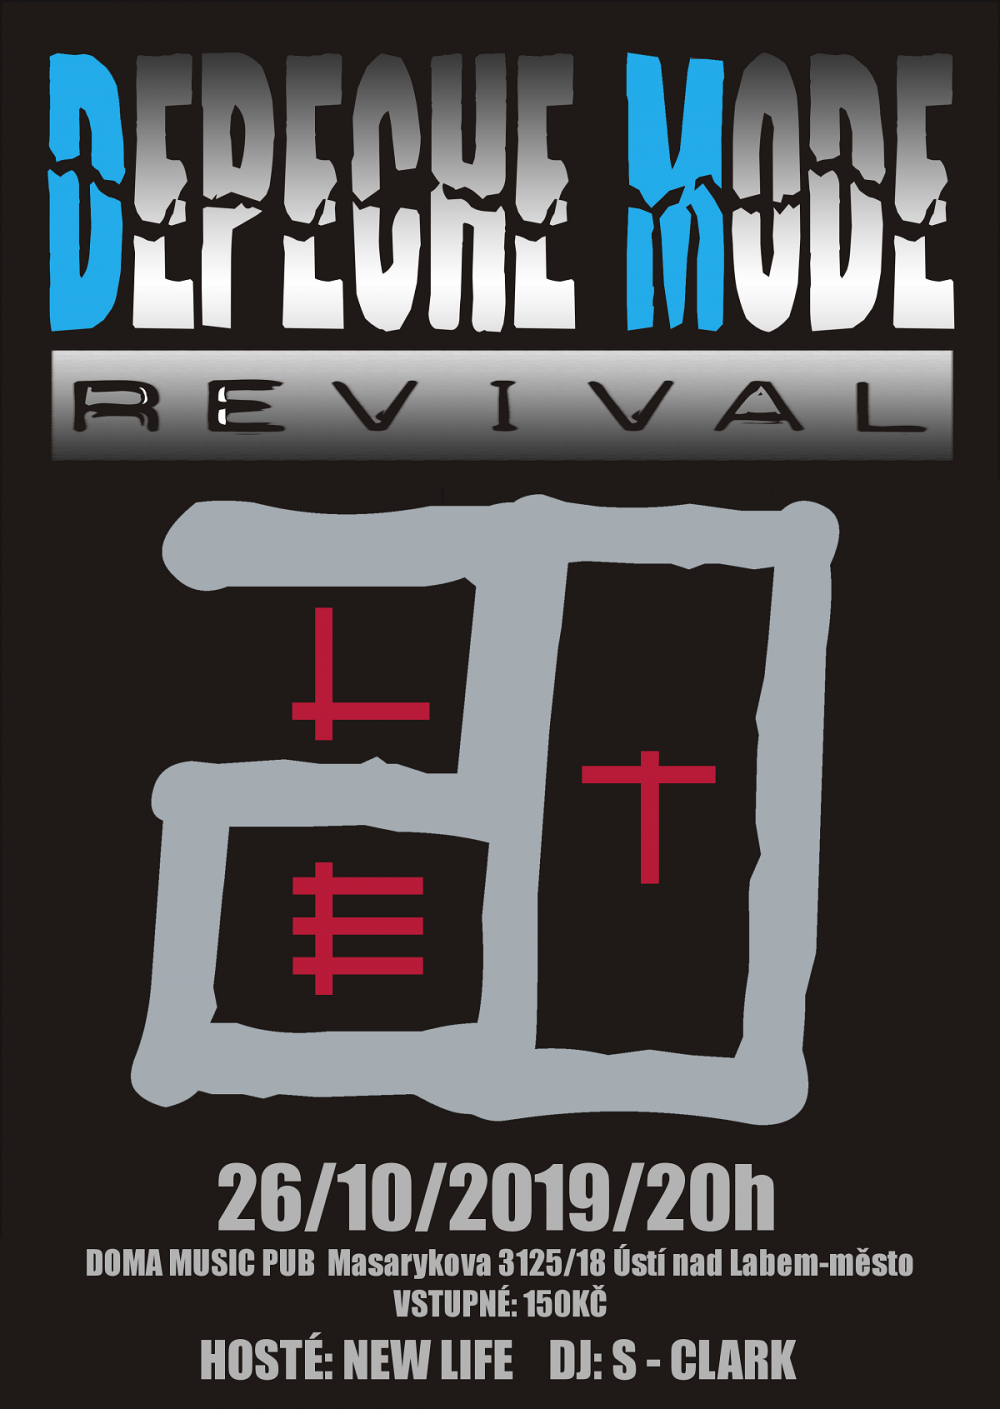 Plagát: Depeche Mode Revival - 20 let